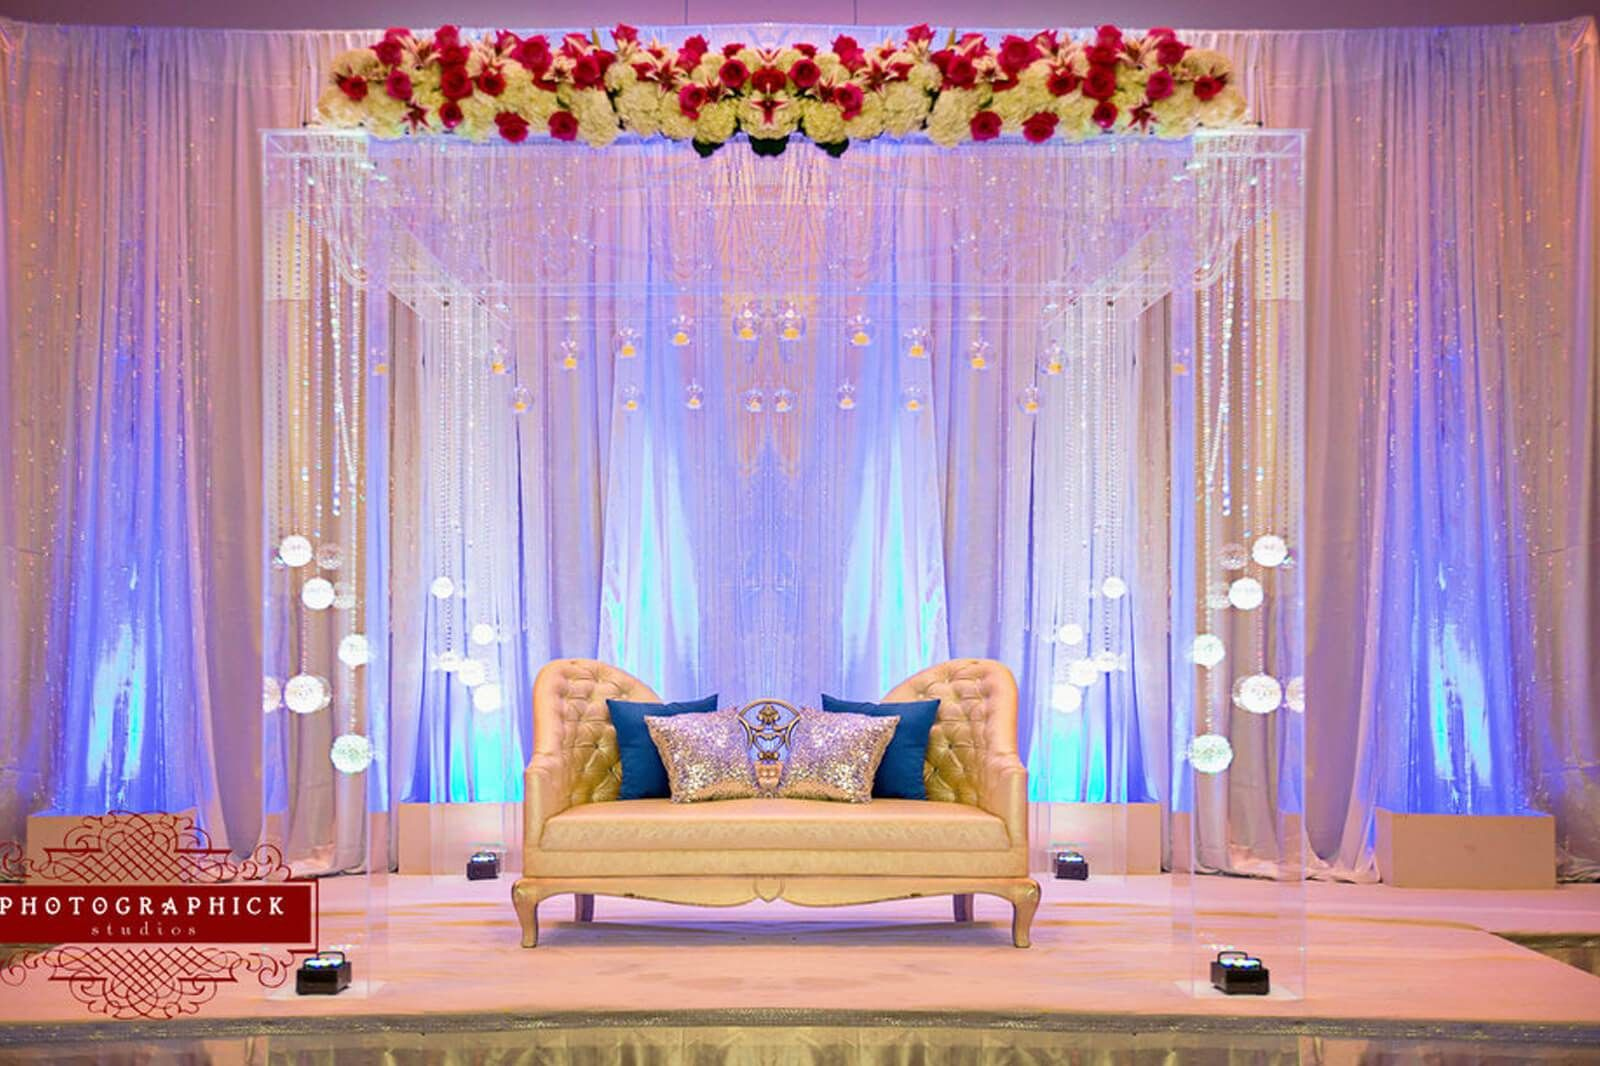 New style wedding stage decoration   Indian Wedding Decorations Ideas  Indian wedding decorations